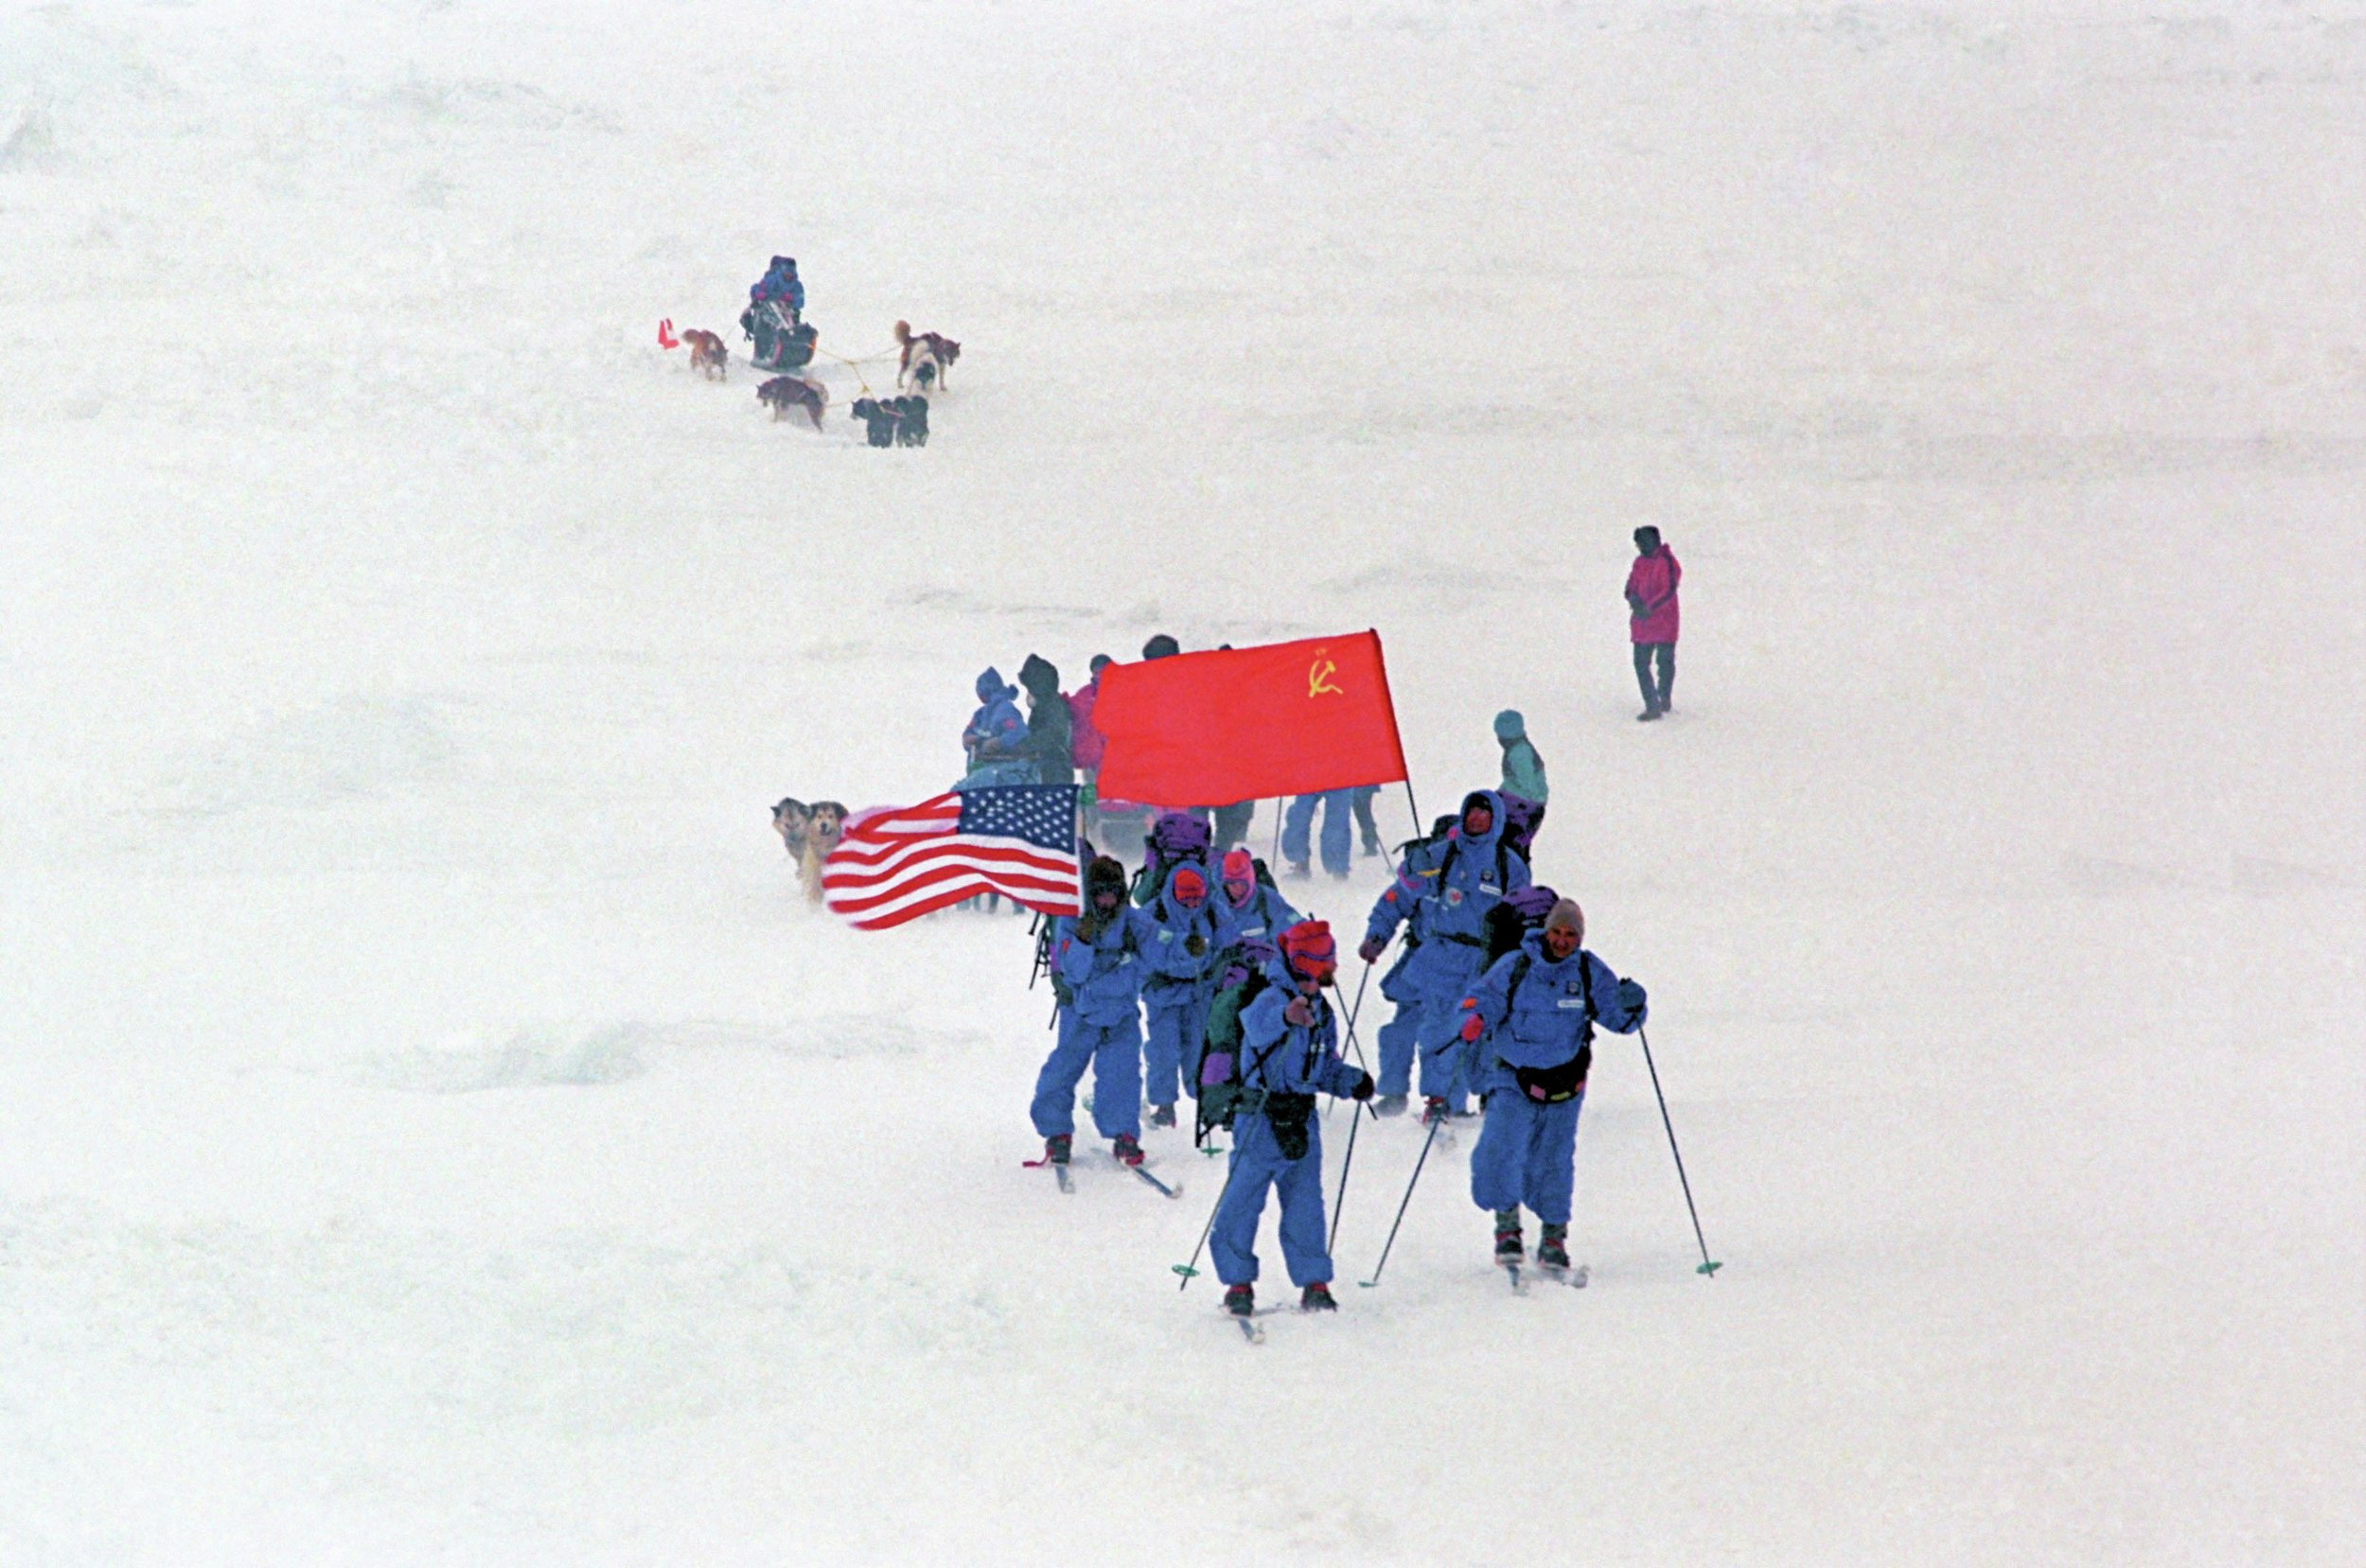 Members of the March-May 1989 Bering Bridge Expedition, a joint effort by U.S. and Soviet adventurers, traveled about 2,000 kilometers from Siberia to Alaska. (Submitted photo)